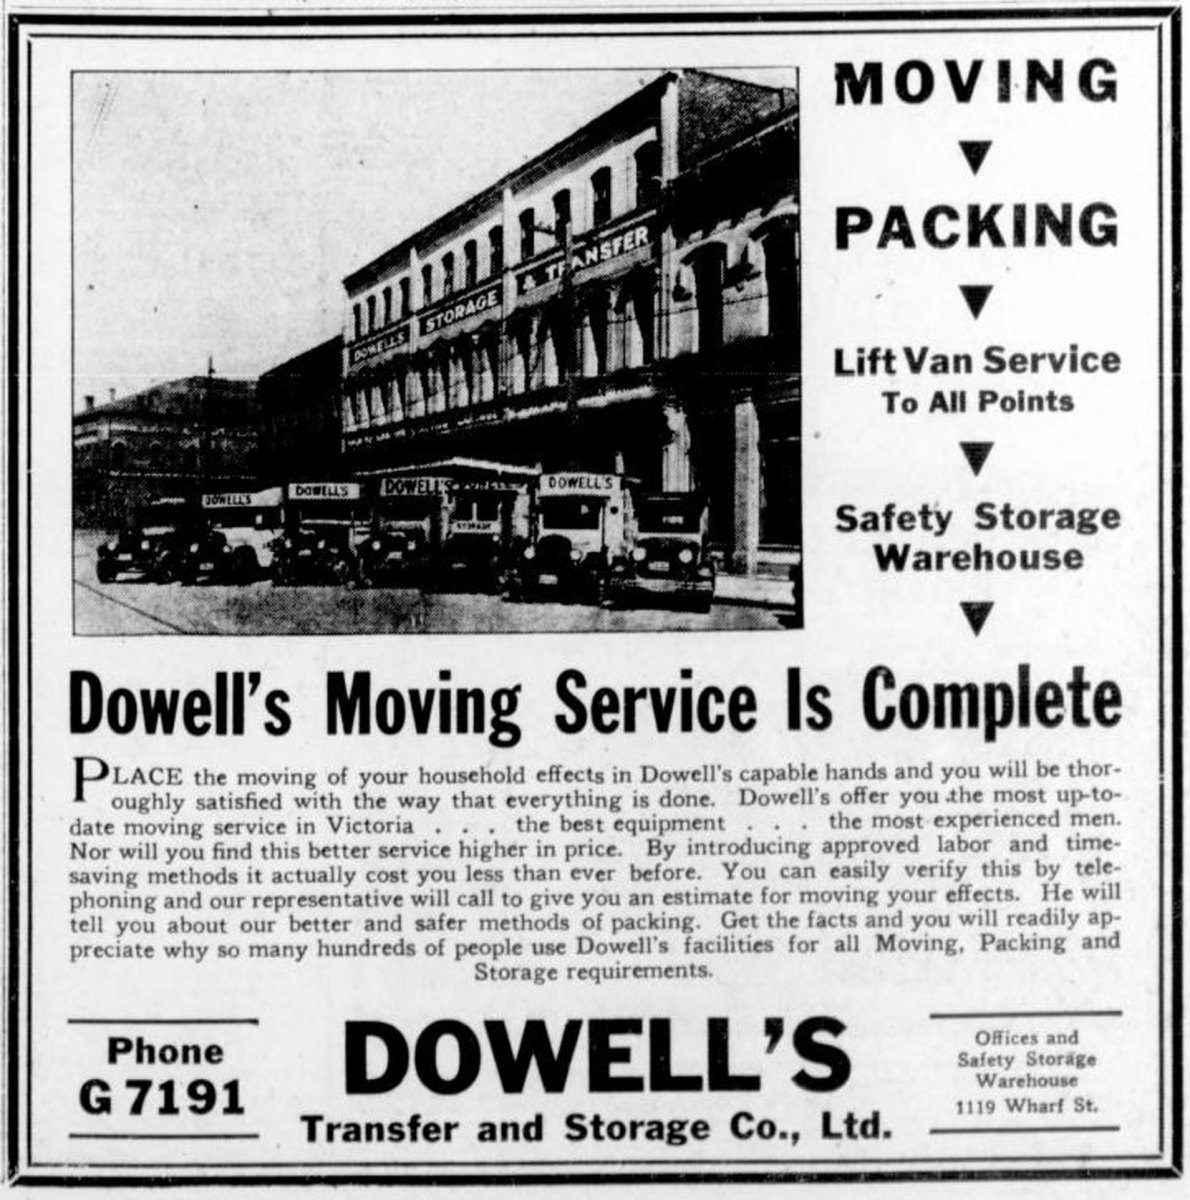 1933 advertisement for Dowell's Transfer & Storage Co., based in the Rithet Building, 1117-1125 Wharf Street (Victoria Online Sightseeing Tours collection)